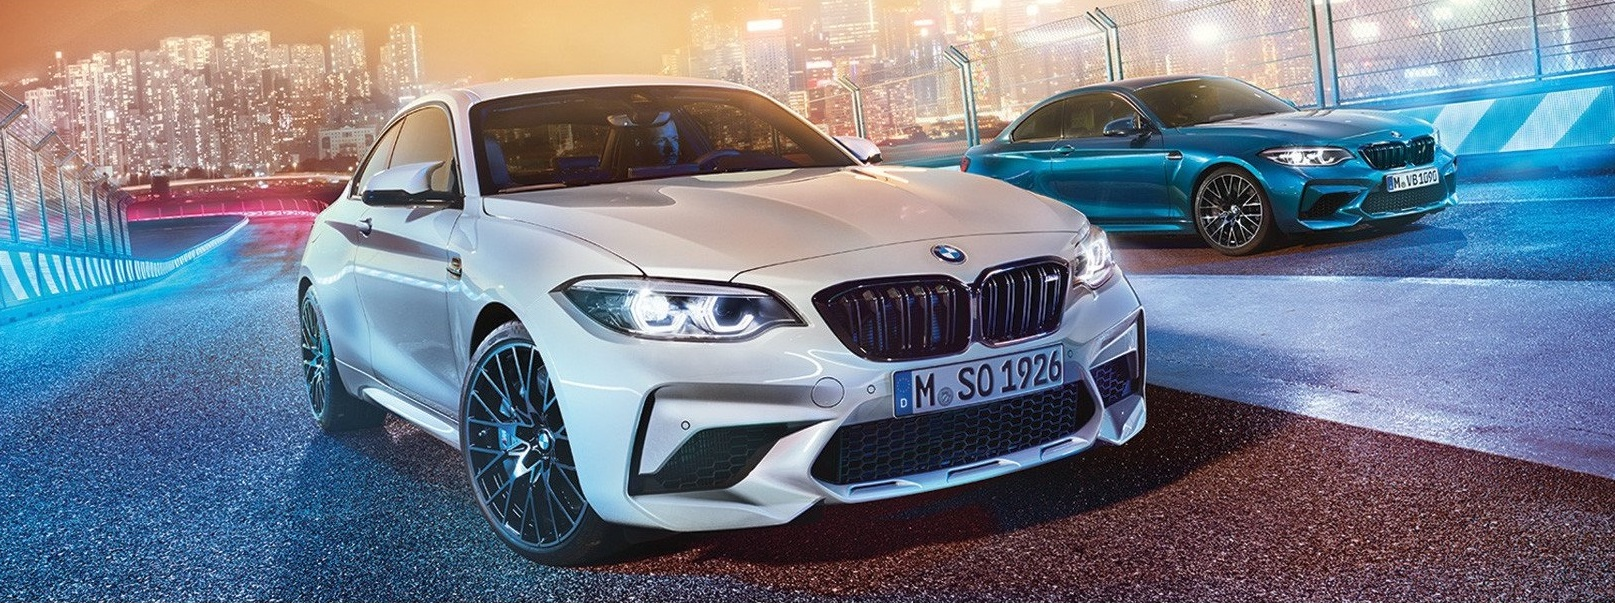 Name:  BMWBLOG-LEAKED-BMW-M2-Competition-51.jpegViews: 49364Size:  511.8 KB